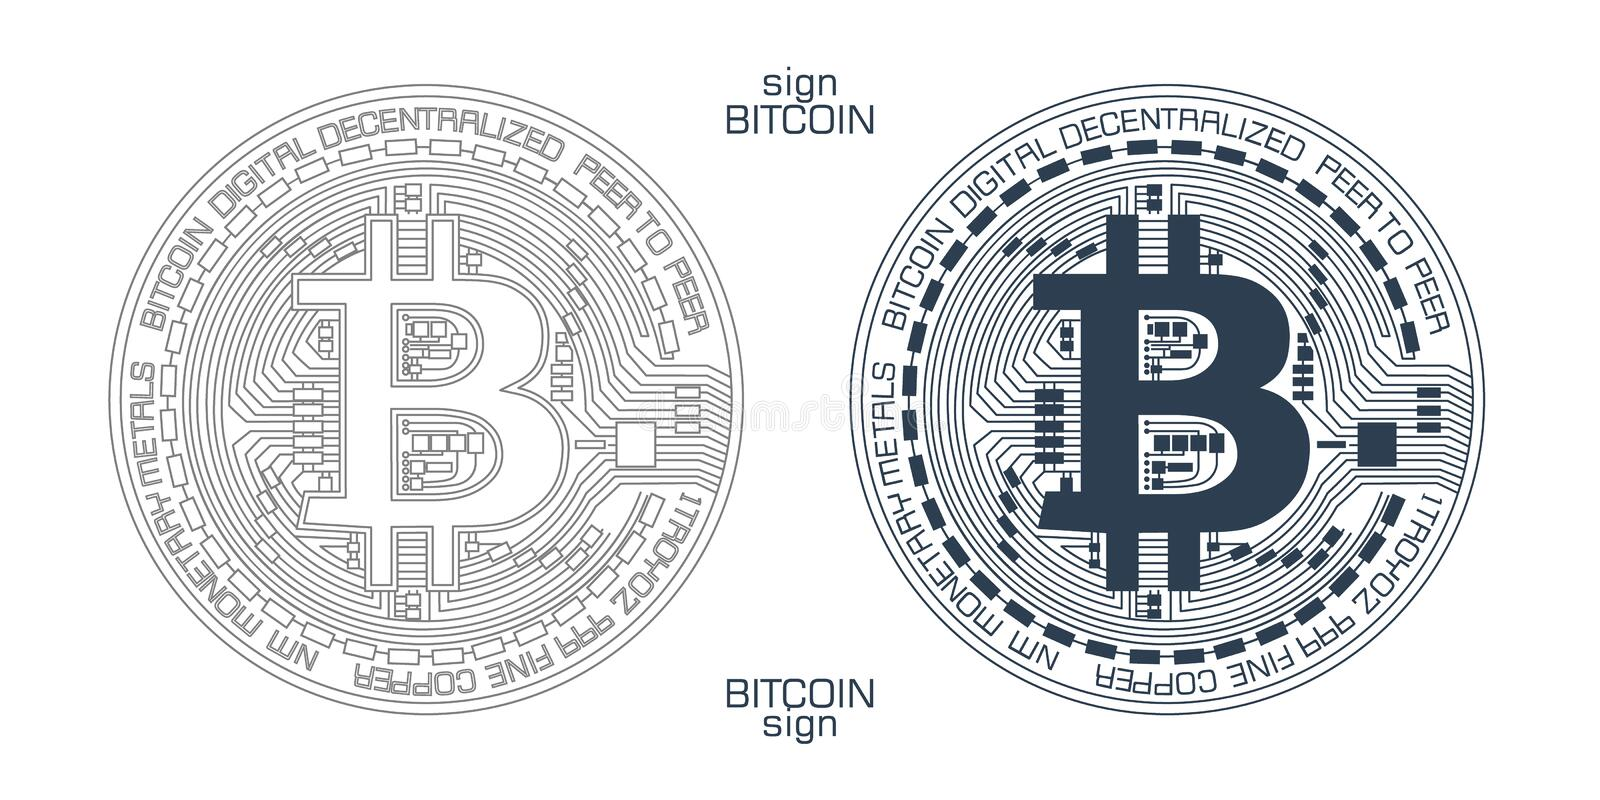 Bitcoin sign vector. New digital currency sign with detailed system showing stylized block-chain technology royalty free illustration